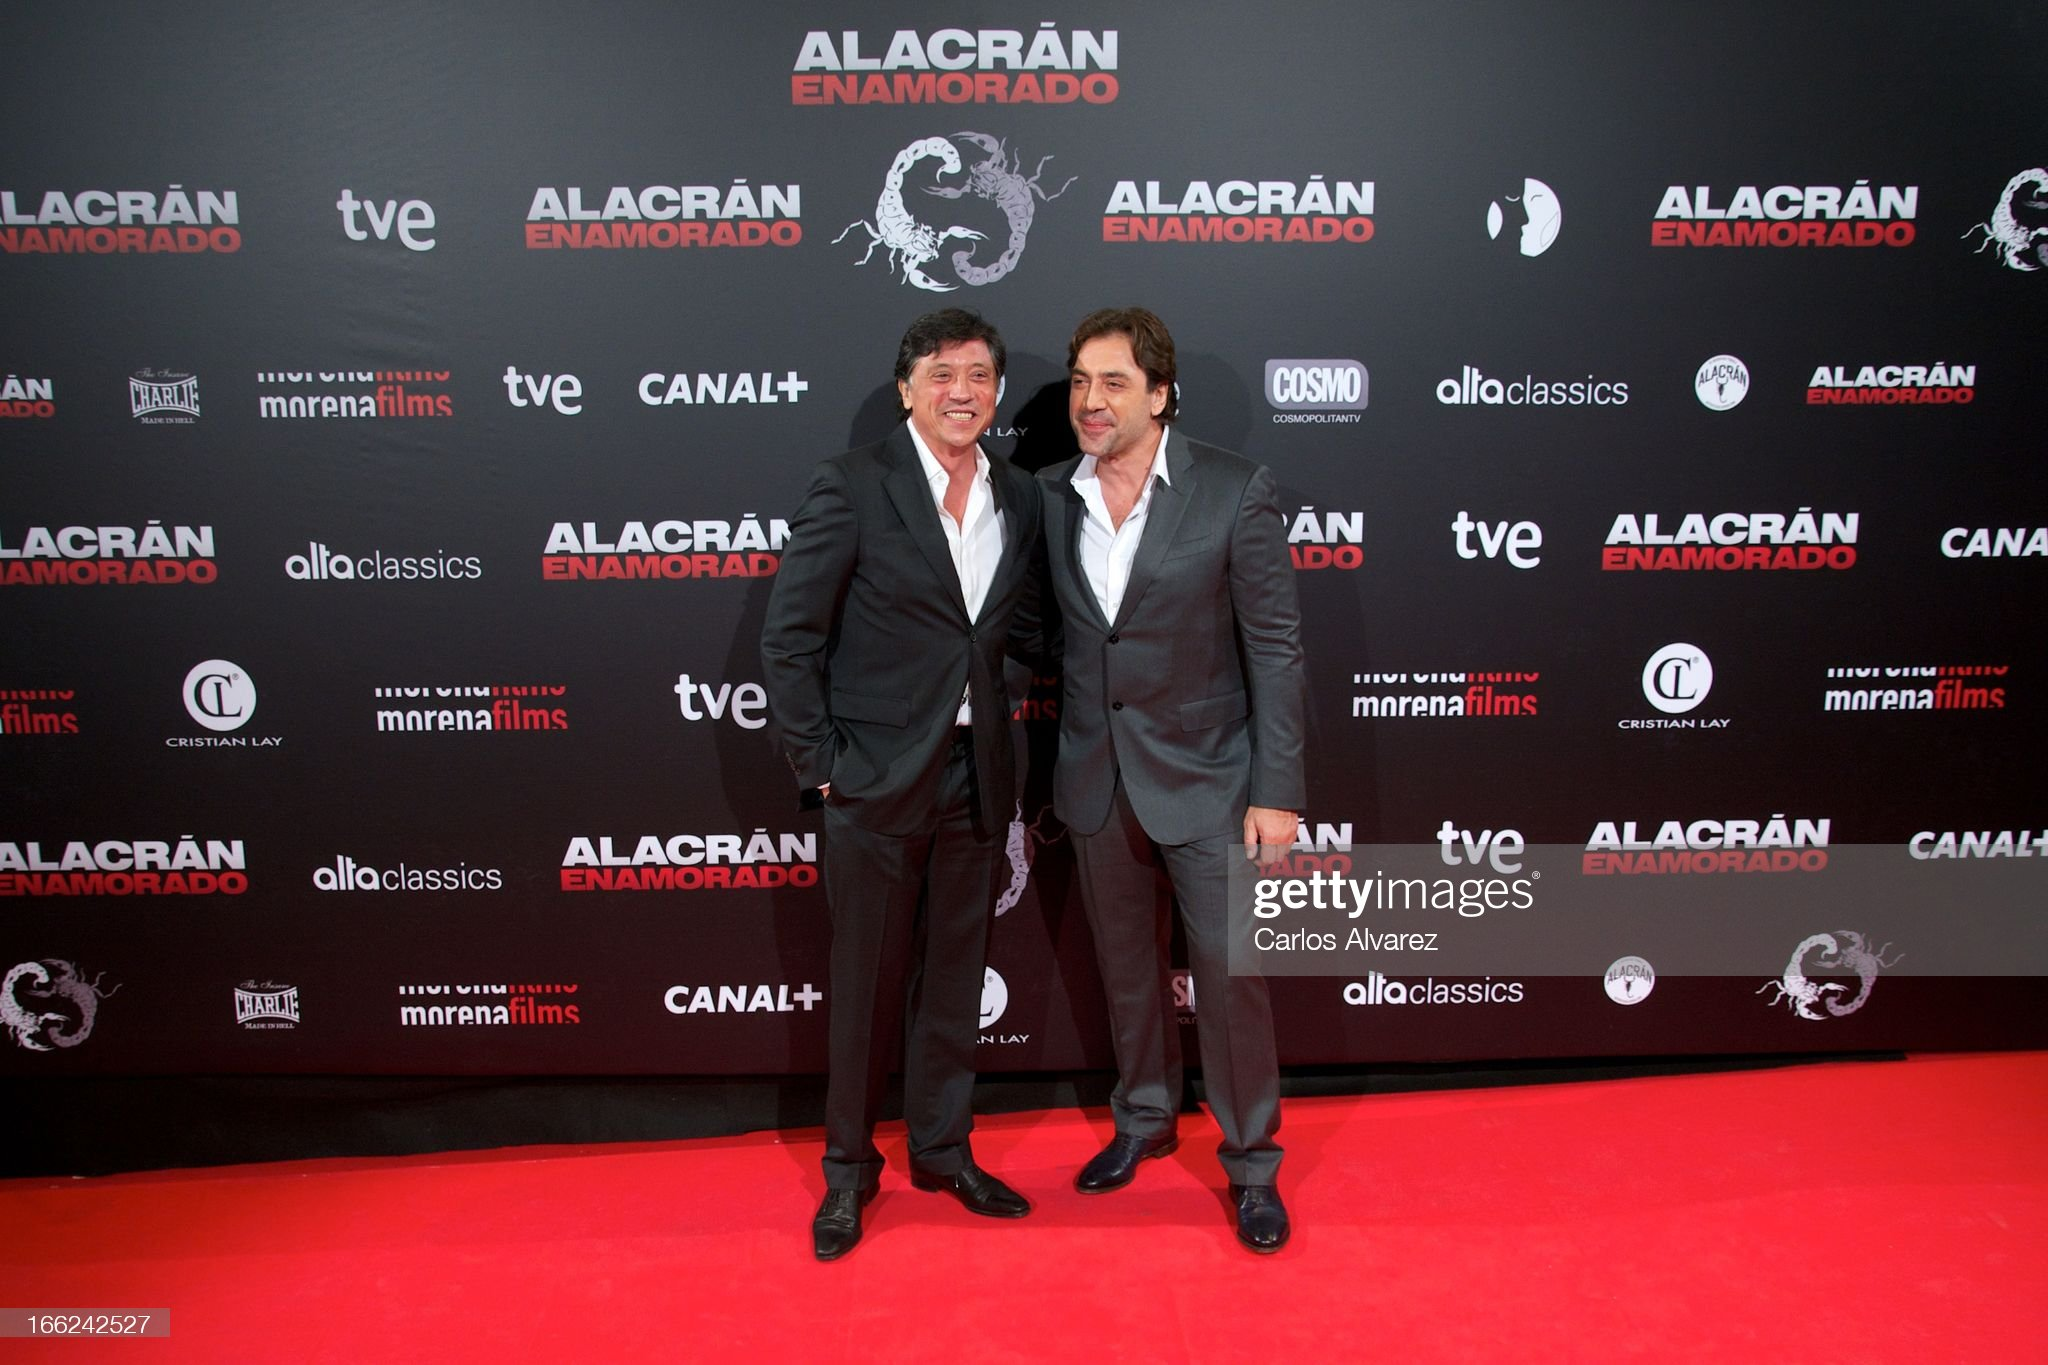 ¿Cuánto mide Javier Bardem? - Altura - Real height Spanish-actors-carlos-bardem-and-javier-bardem-attend-the-alacran-picture-id166242527?s=2048x2048